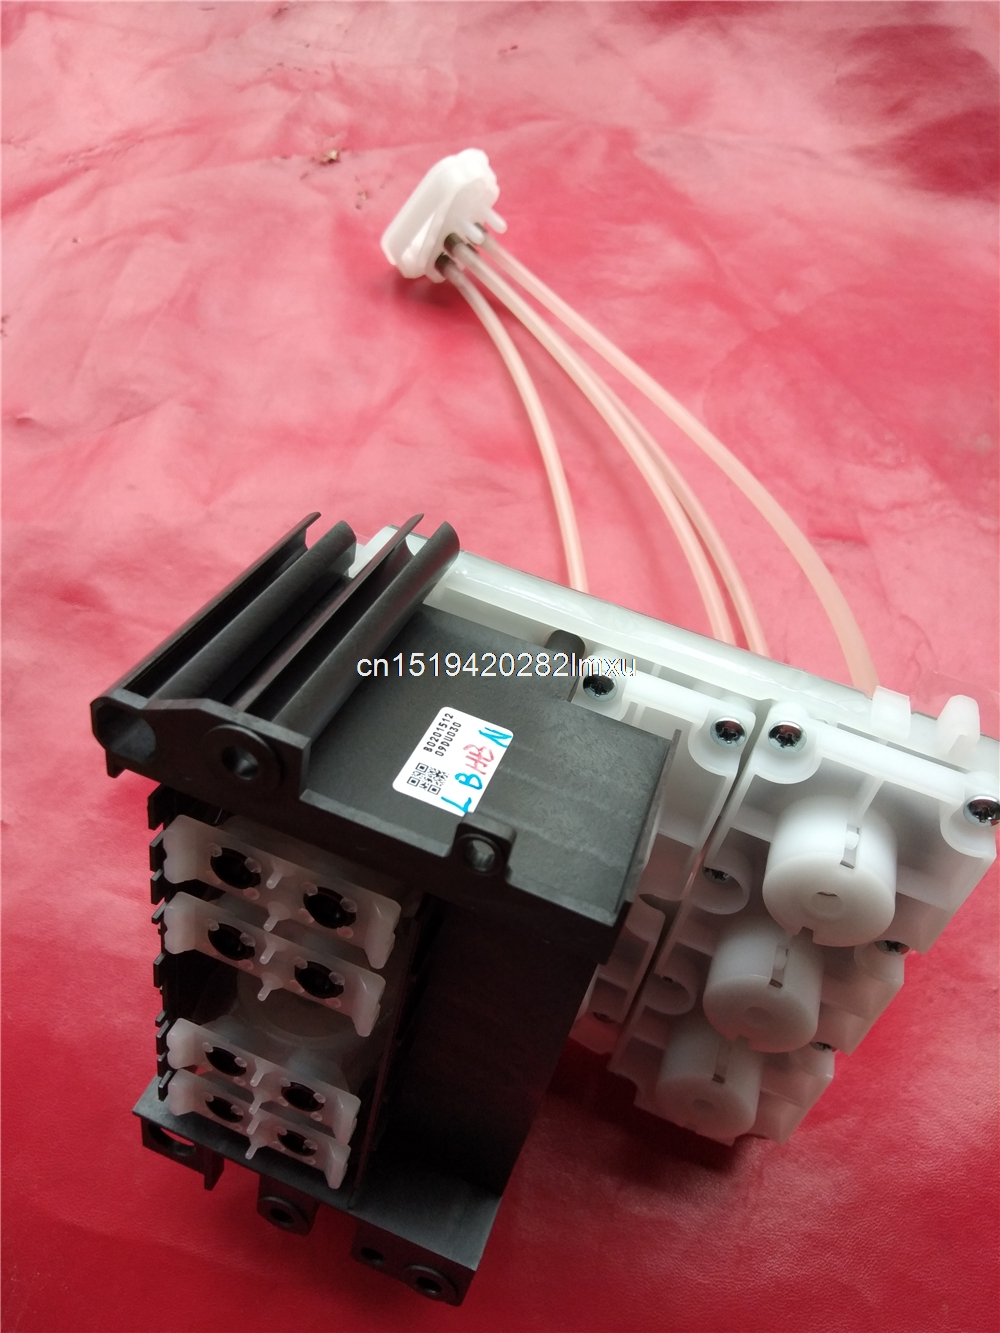 цены New and original Ink damper for Epson S30680 S30600 S30610 S30650 30670 Printer ink damper assembly